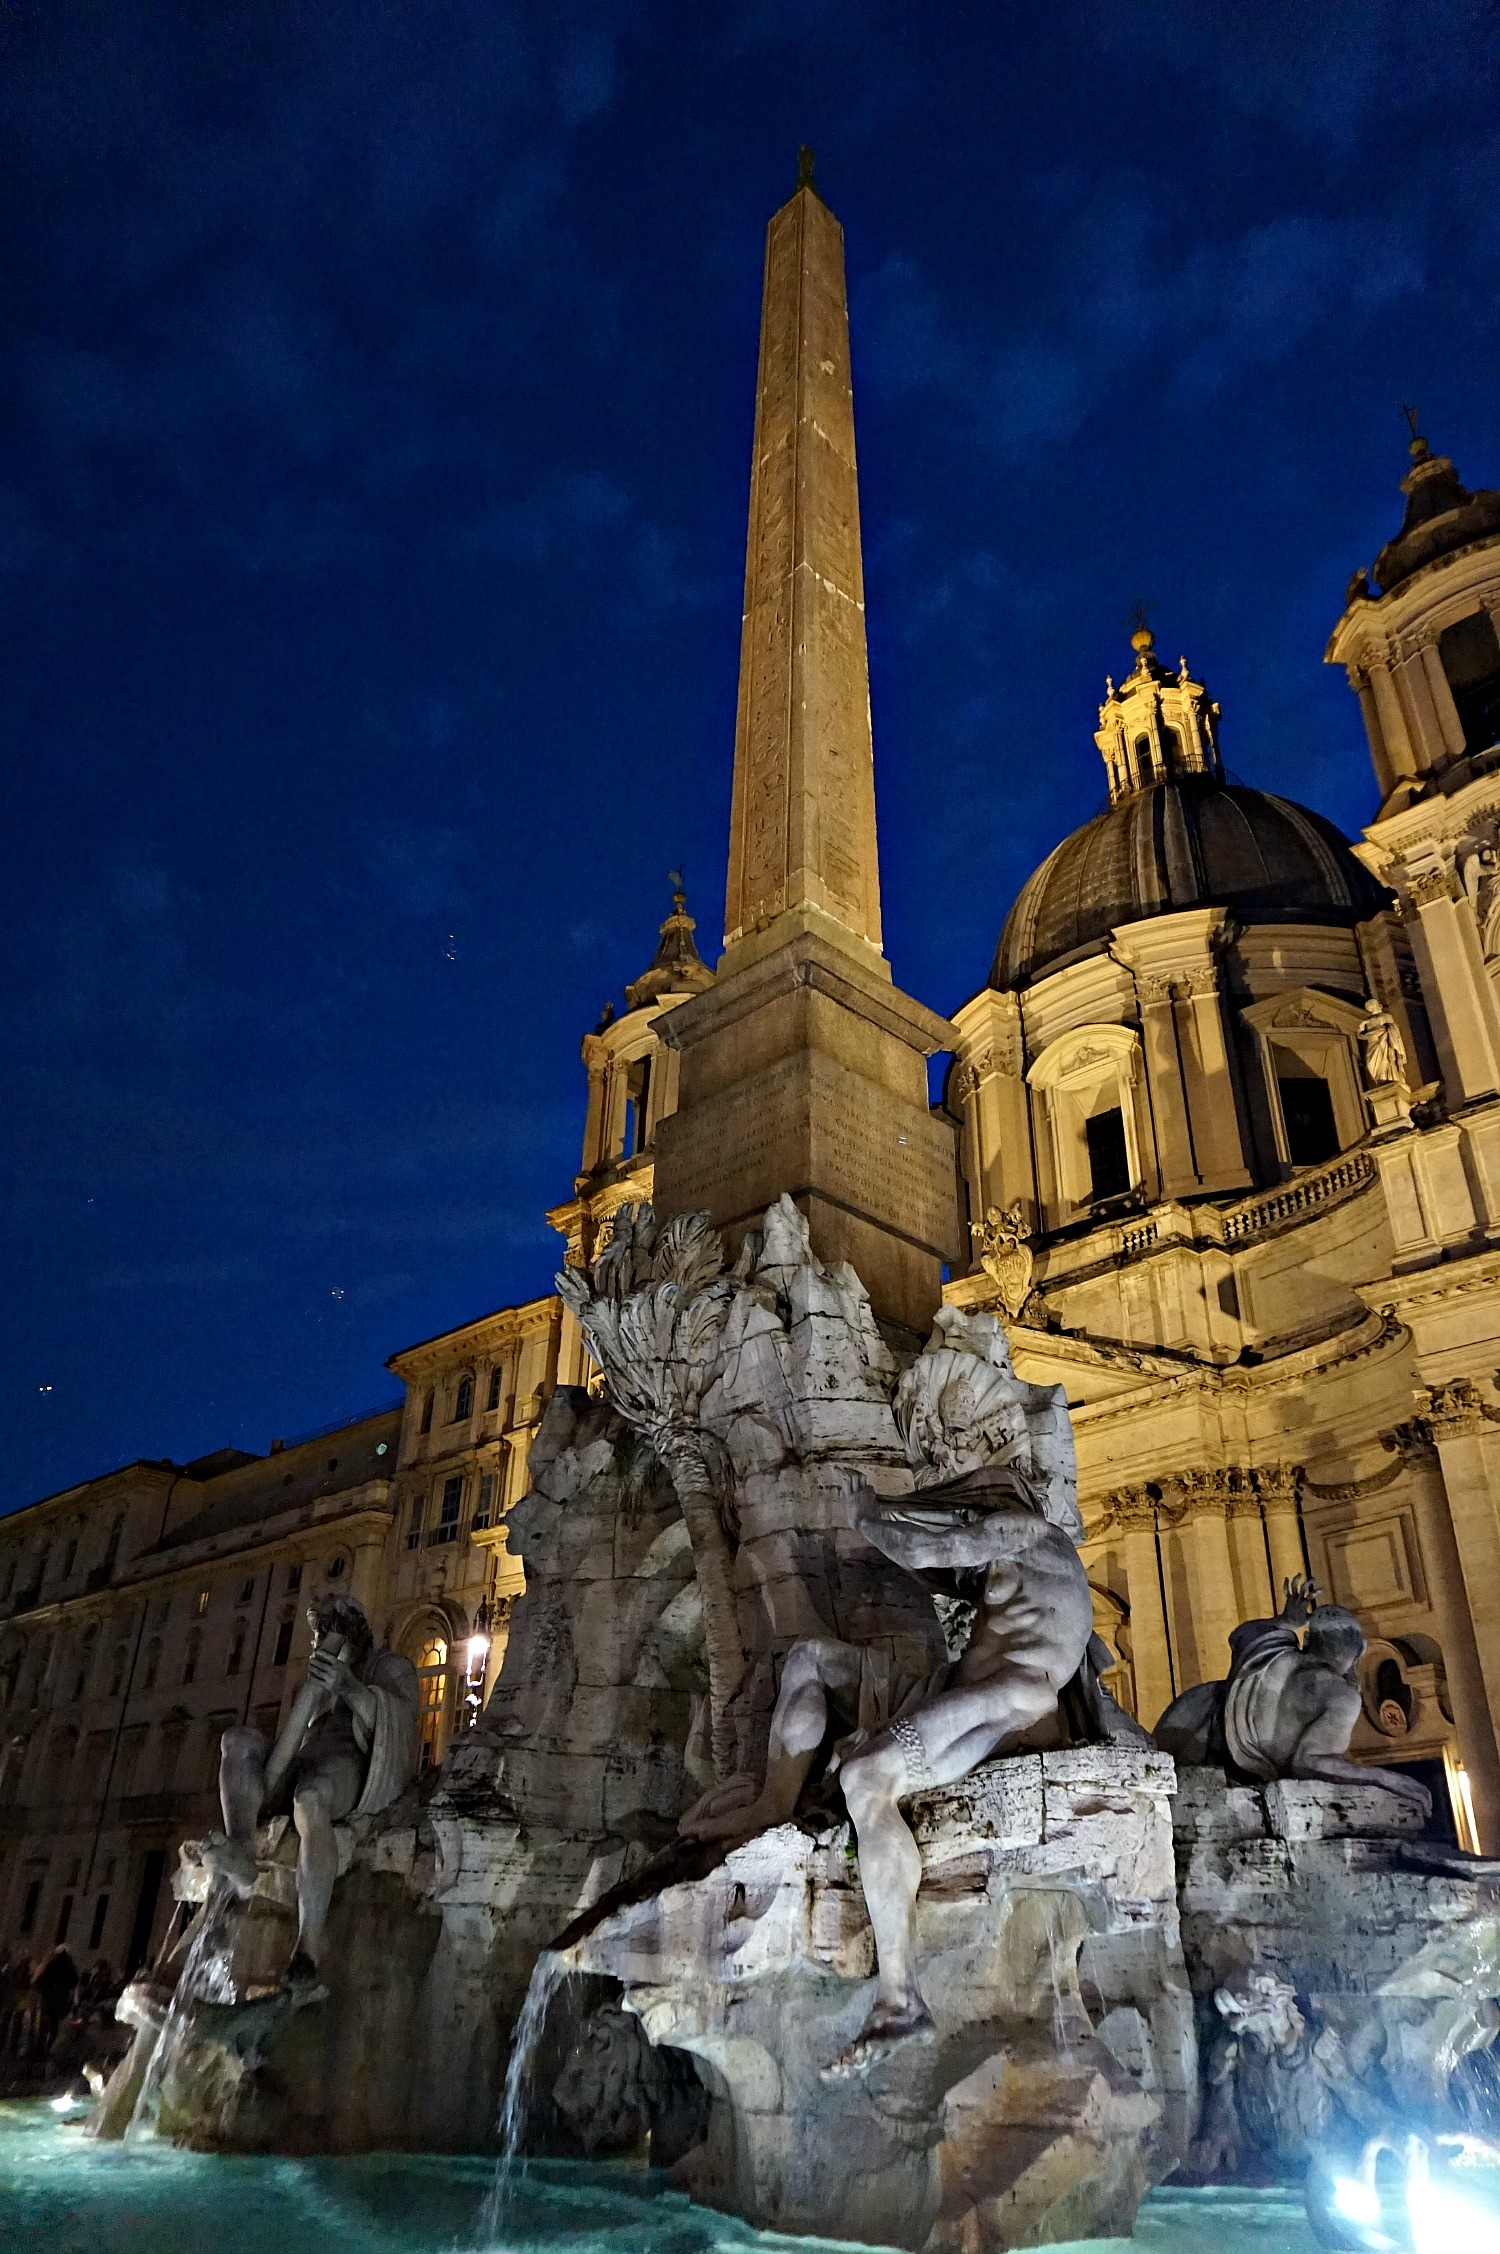 Magic of Piazza Navona at night.